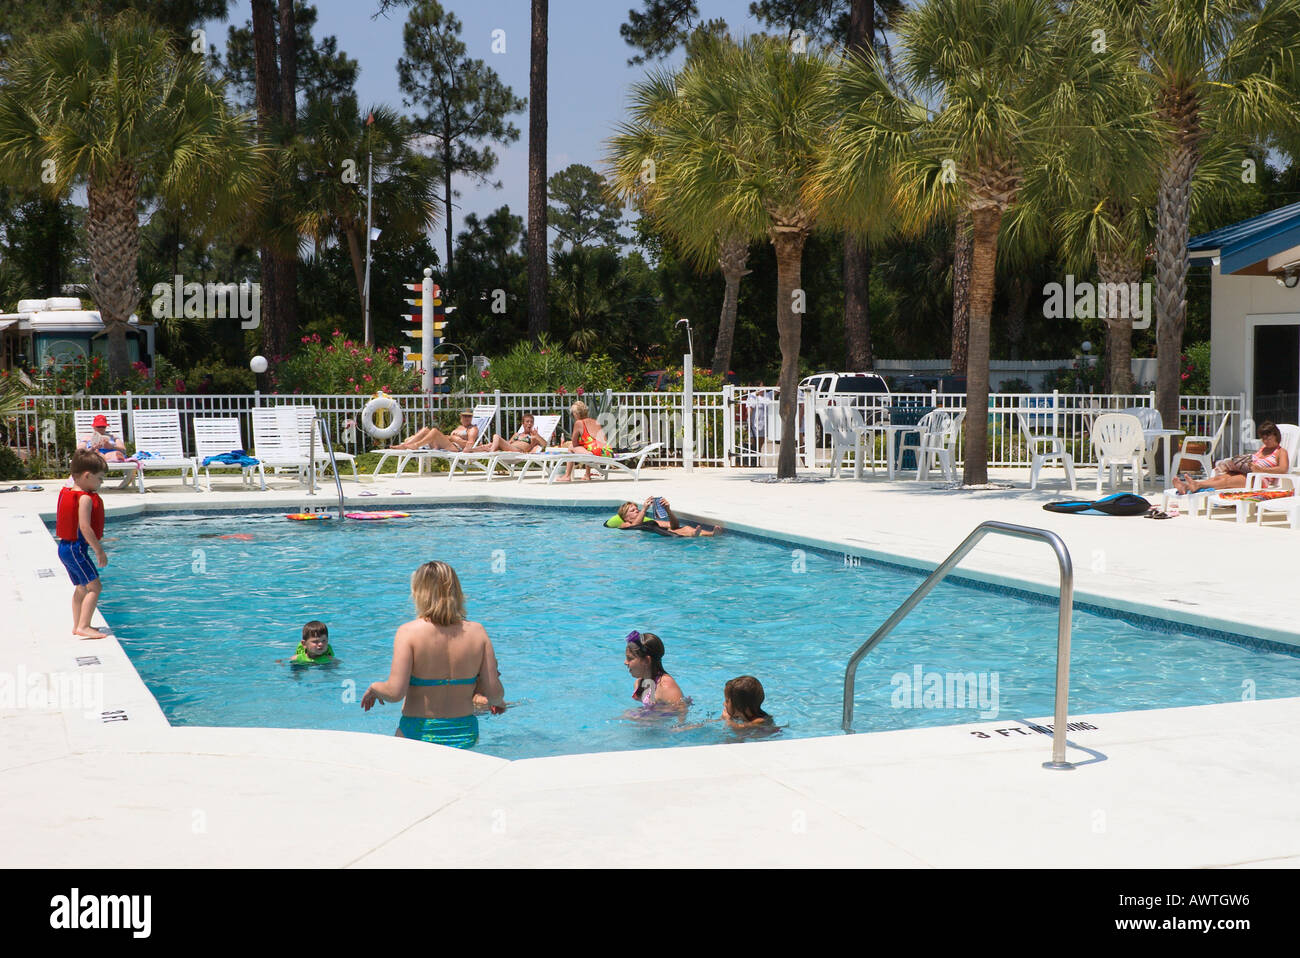 10 Best Pool Services and Builders - Panama City FL ...